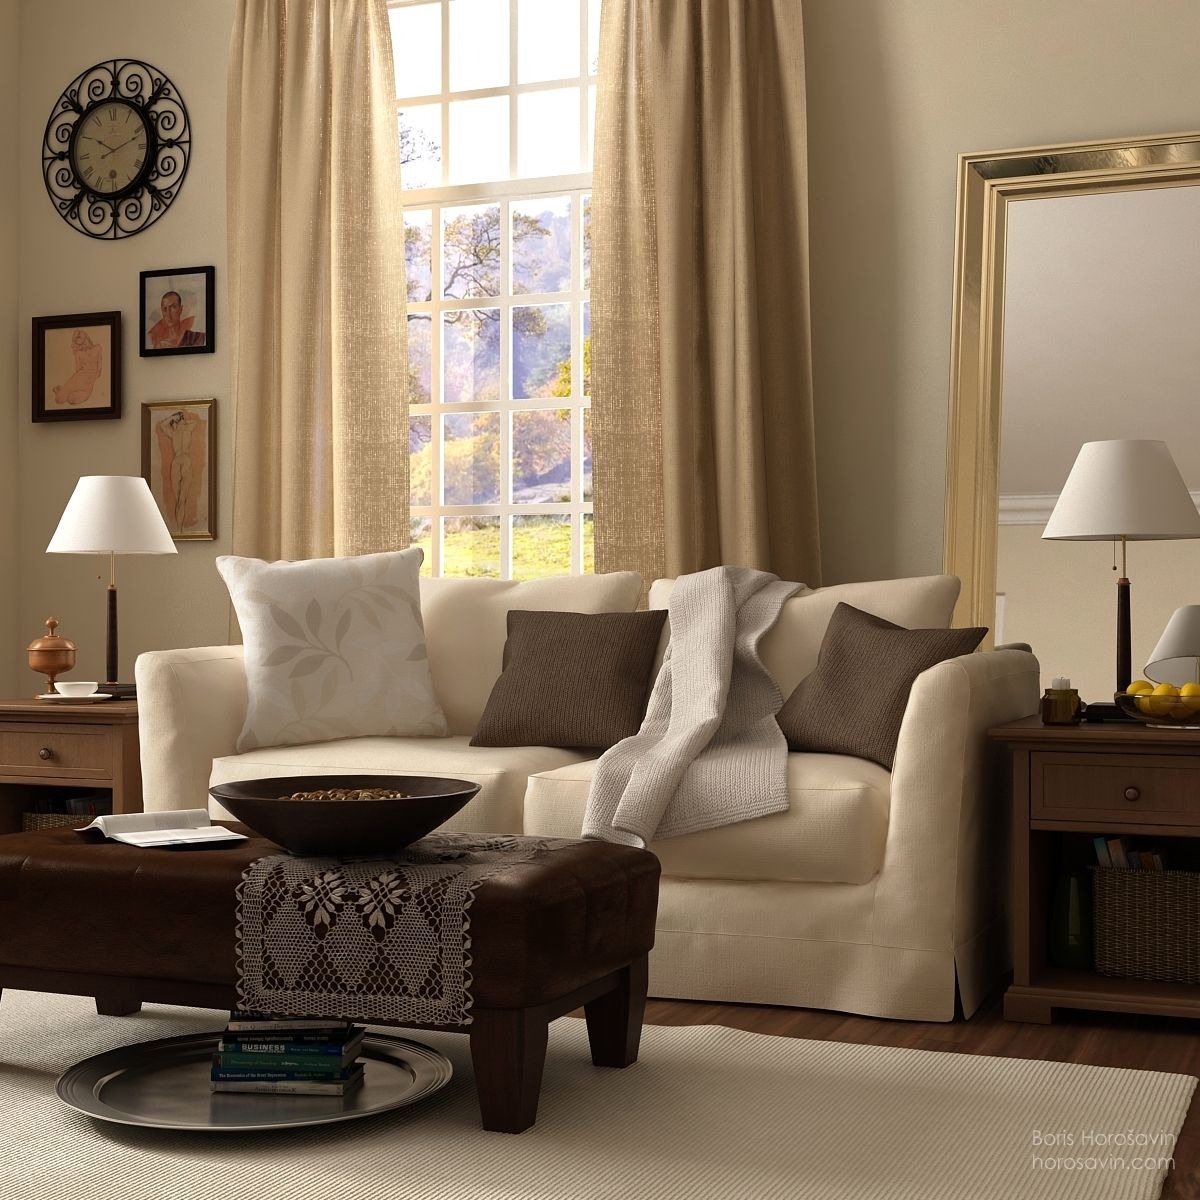 small living room ideas google search with images on small laundry room paint ideas with brown furniture colors id=76271